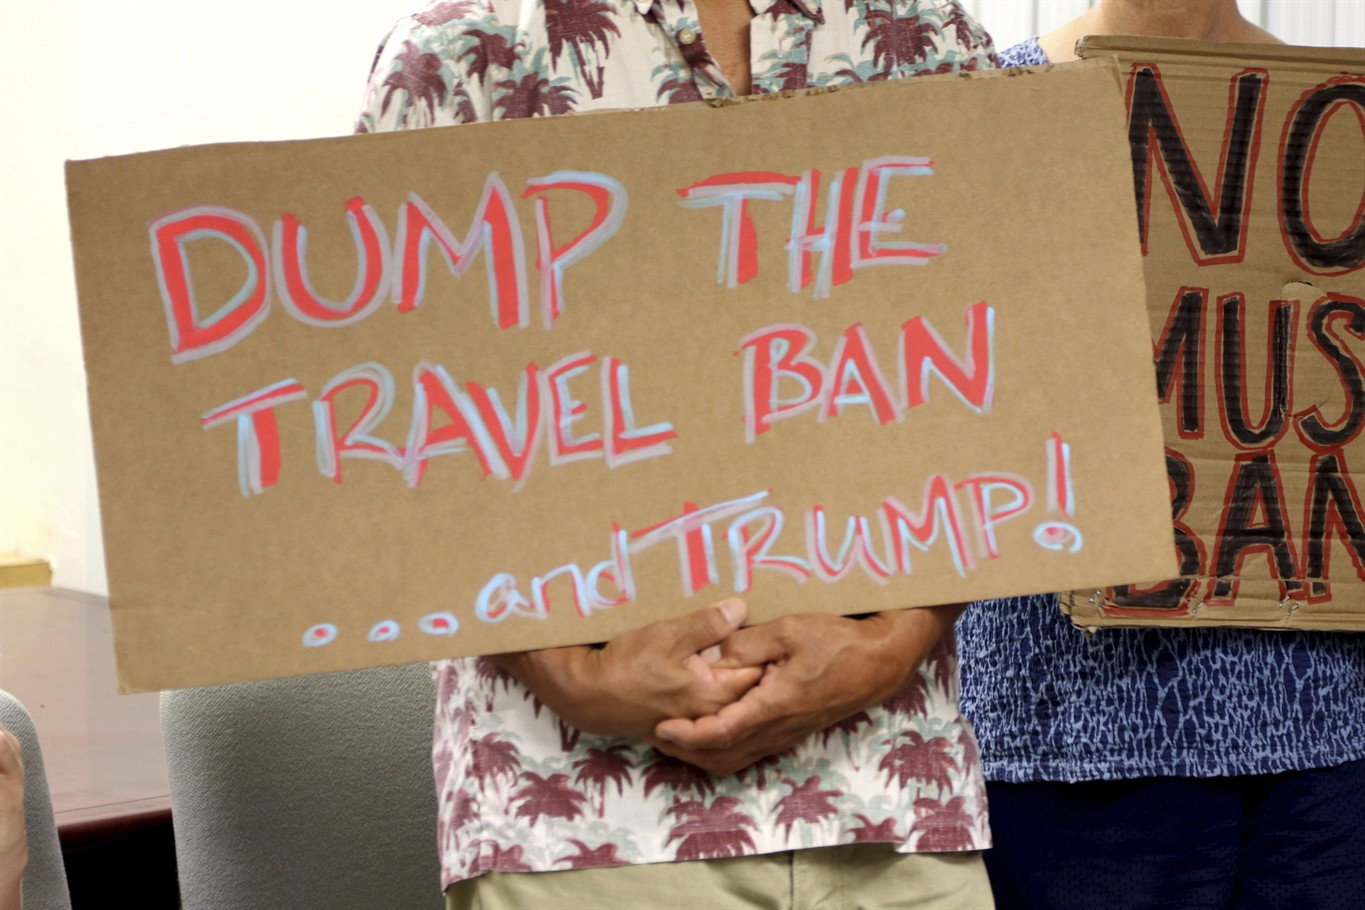 6 in 10 American Voters Support Trump's Travel Ban